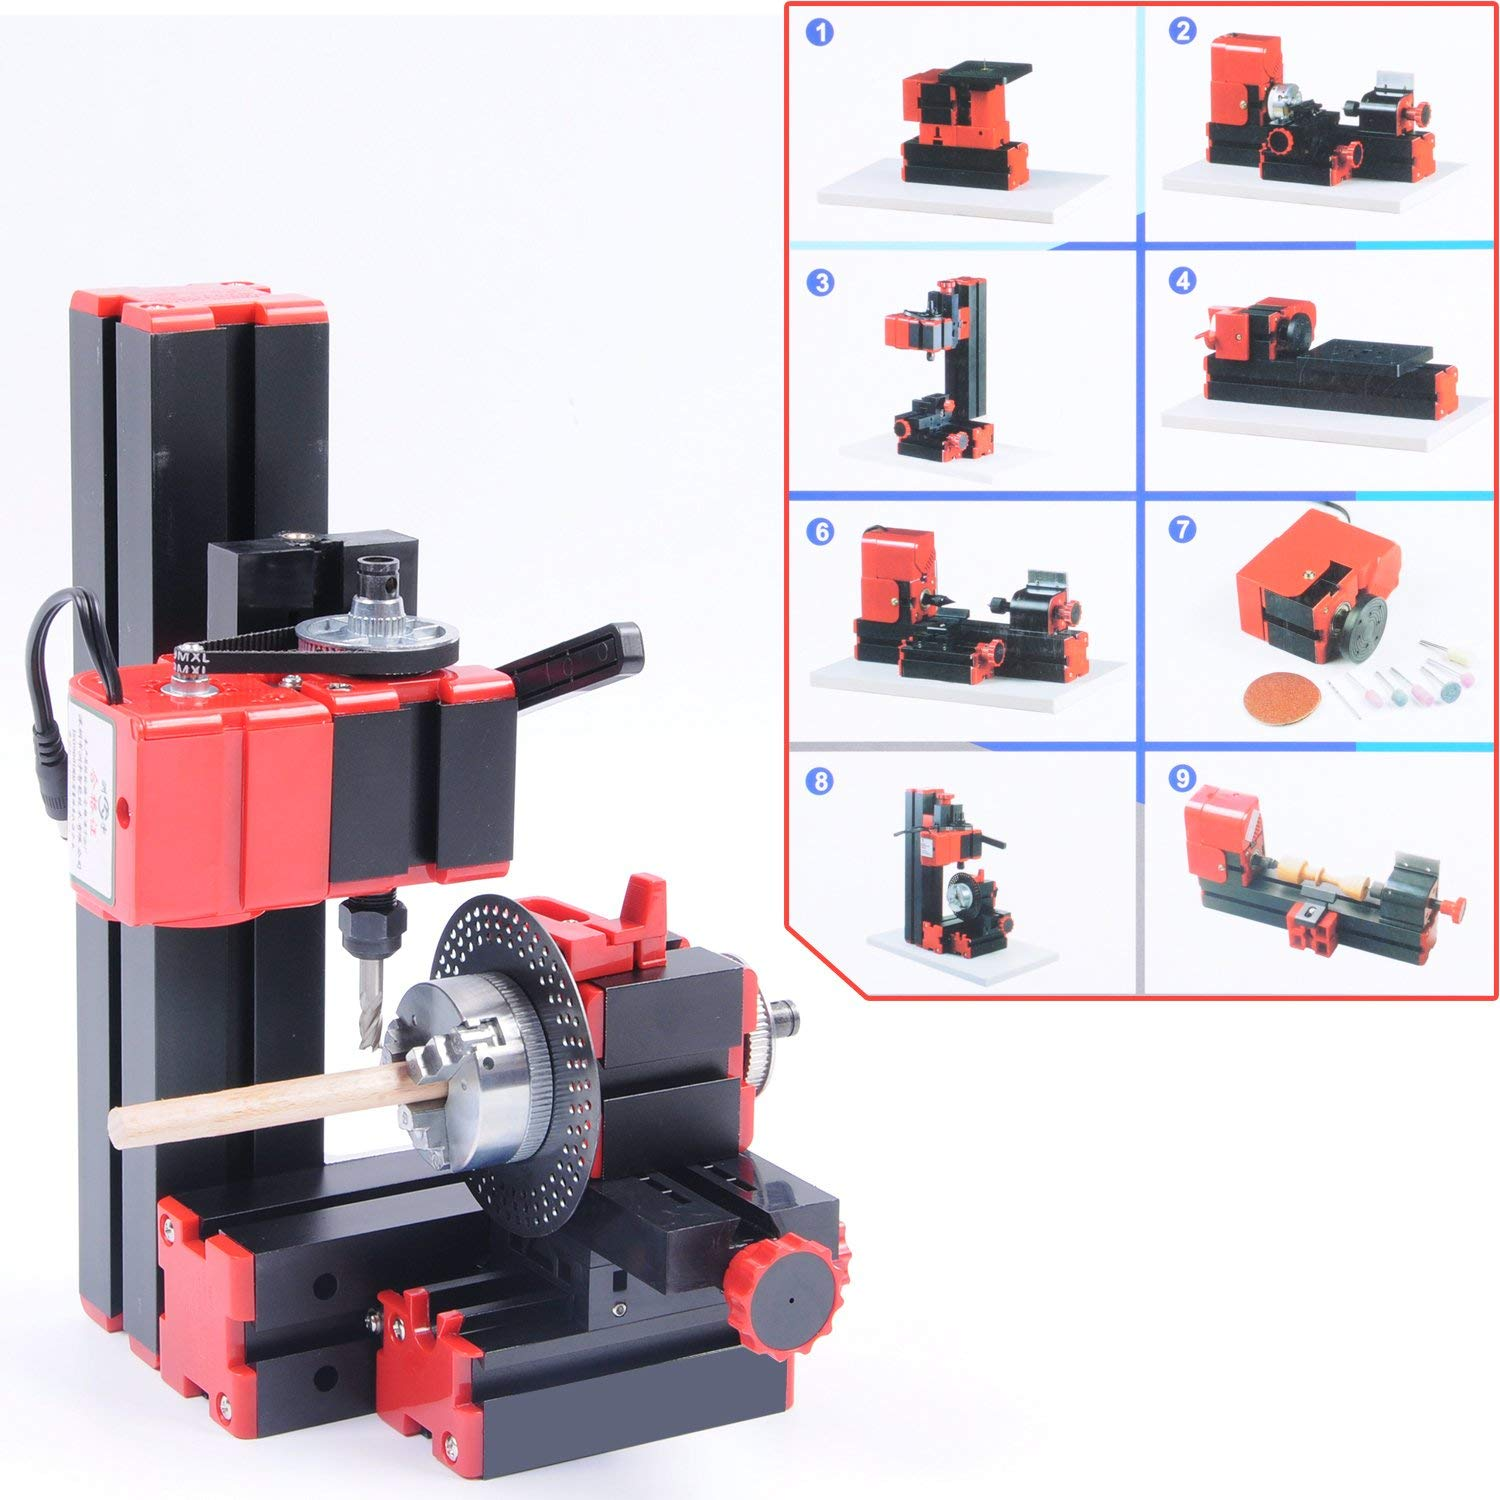 Wotefusi Industrial New 12V DC 2A 24W 8-in-1 Woodworking Mini Classic Lathe Handle Tool Indexing Milling Machine Sanding Sawing Wood-turning Driller Drilling Grinder